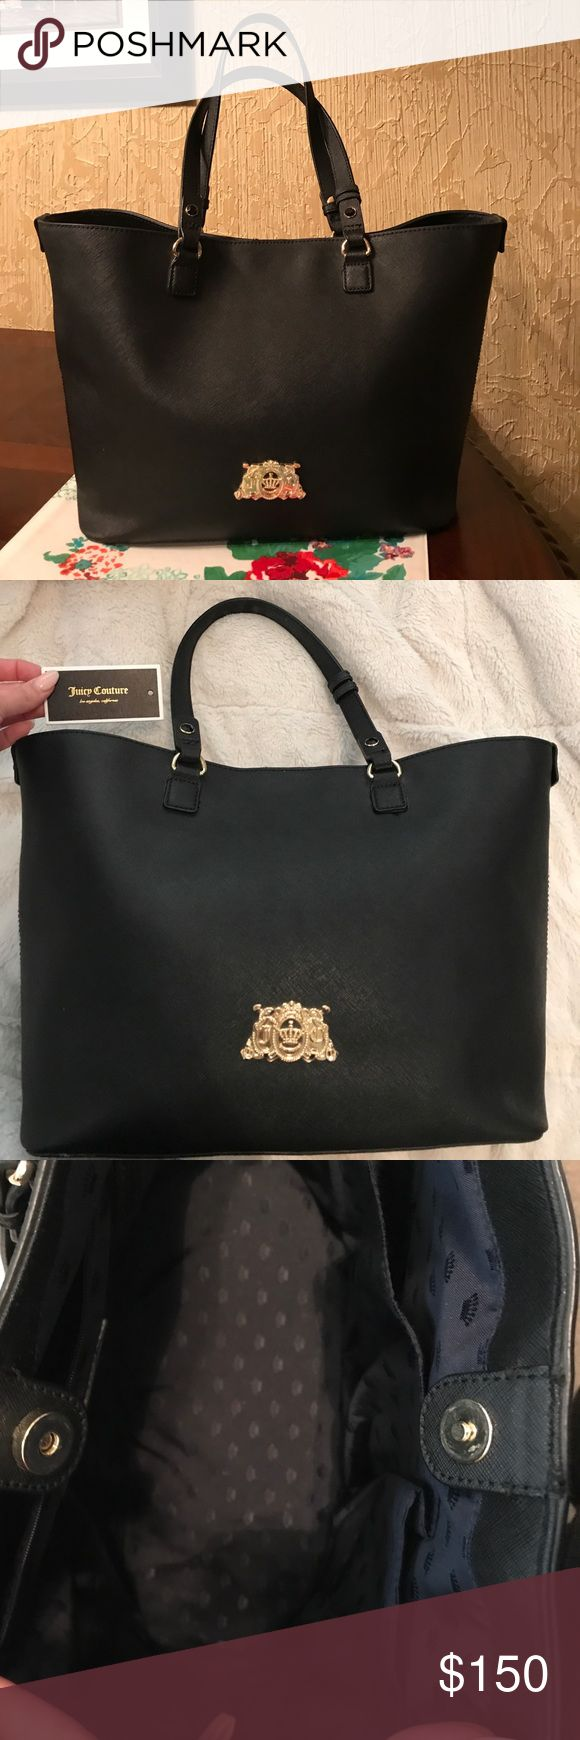 Black & Gold Juicy Couture Tote Purse Minor flaws only used a couple months. Has very dark navy interior with crown pattern. Gold Juicy Couture emblem on front of bag. Pretty big Tote. Juicy Couture Bags Totes